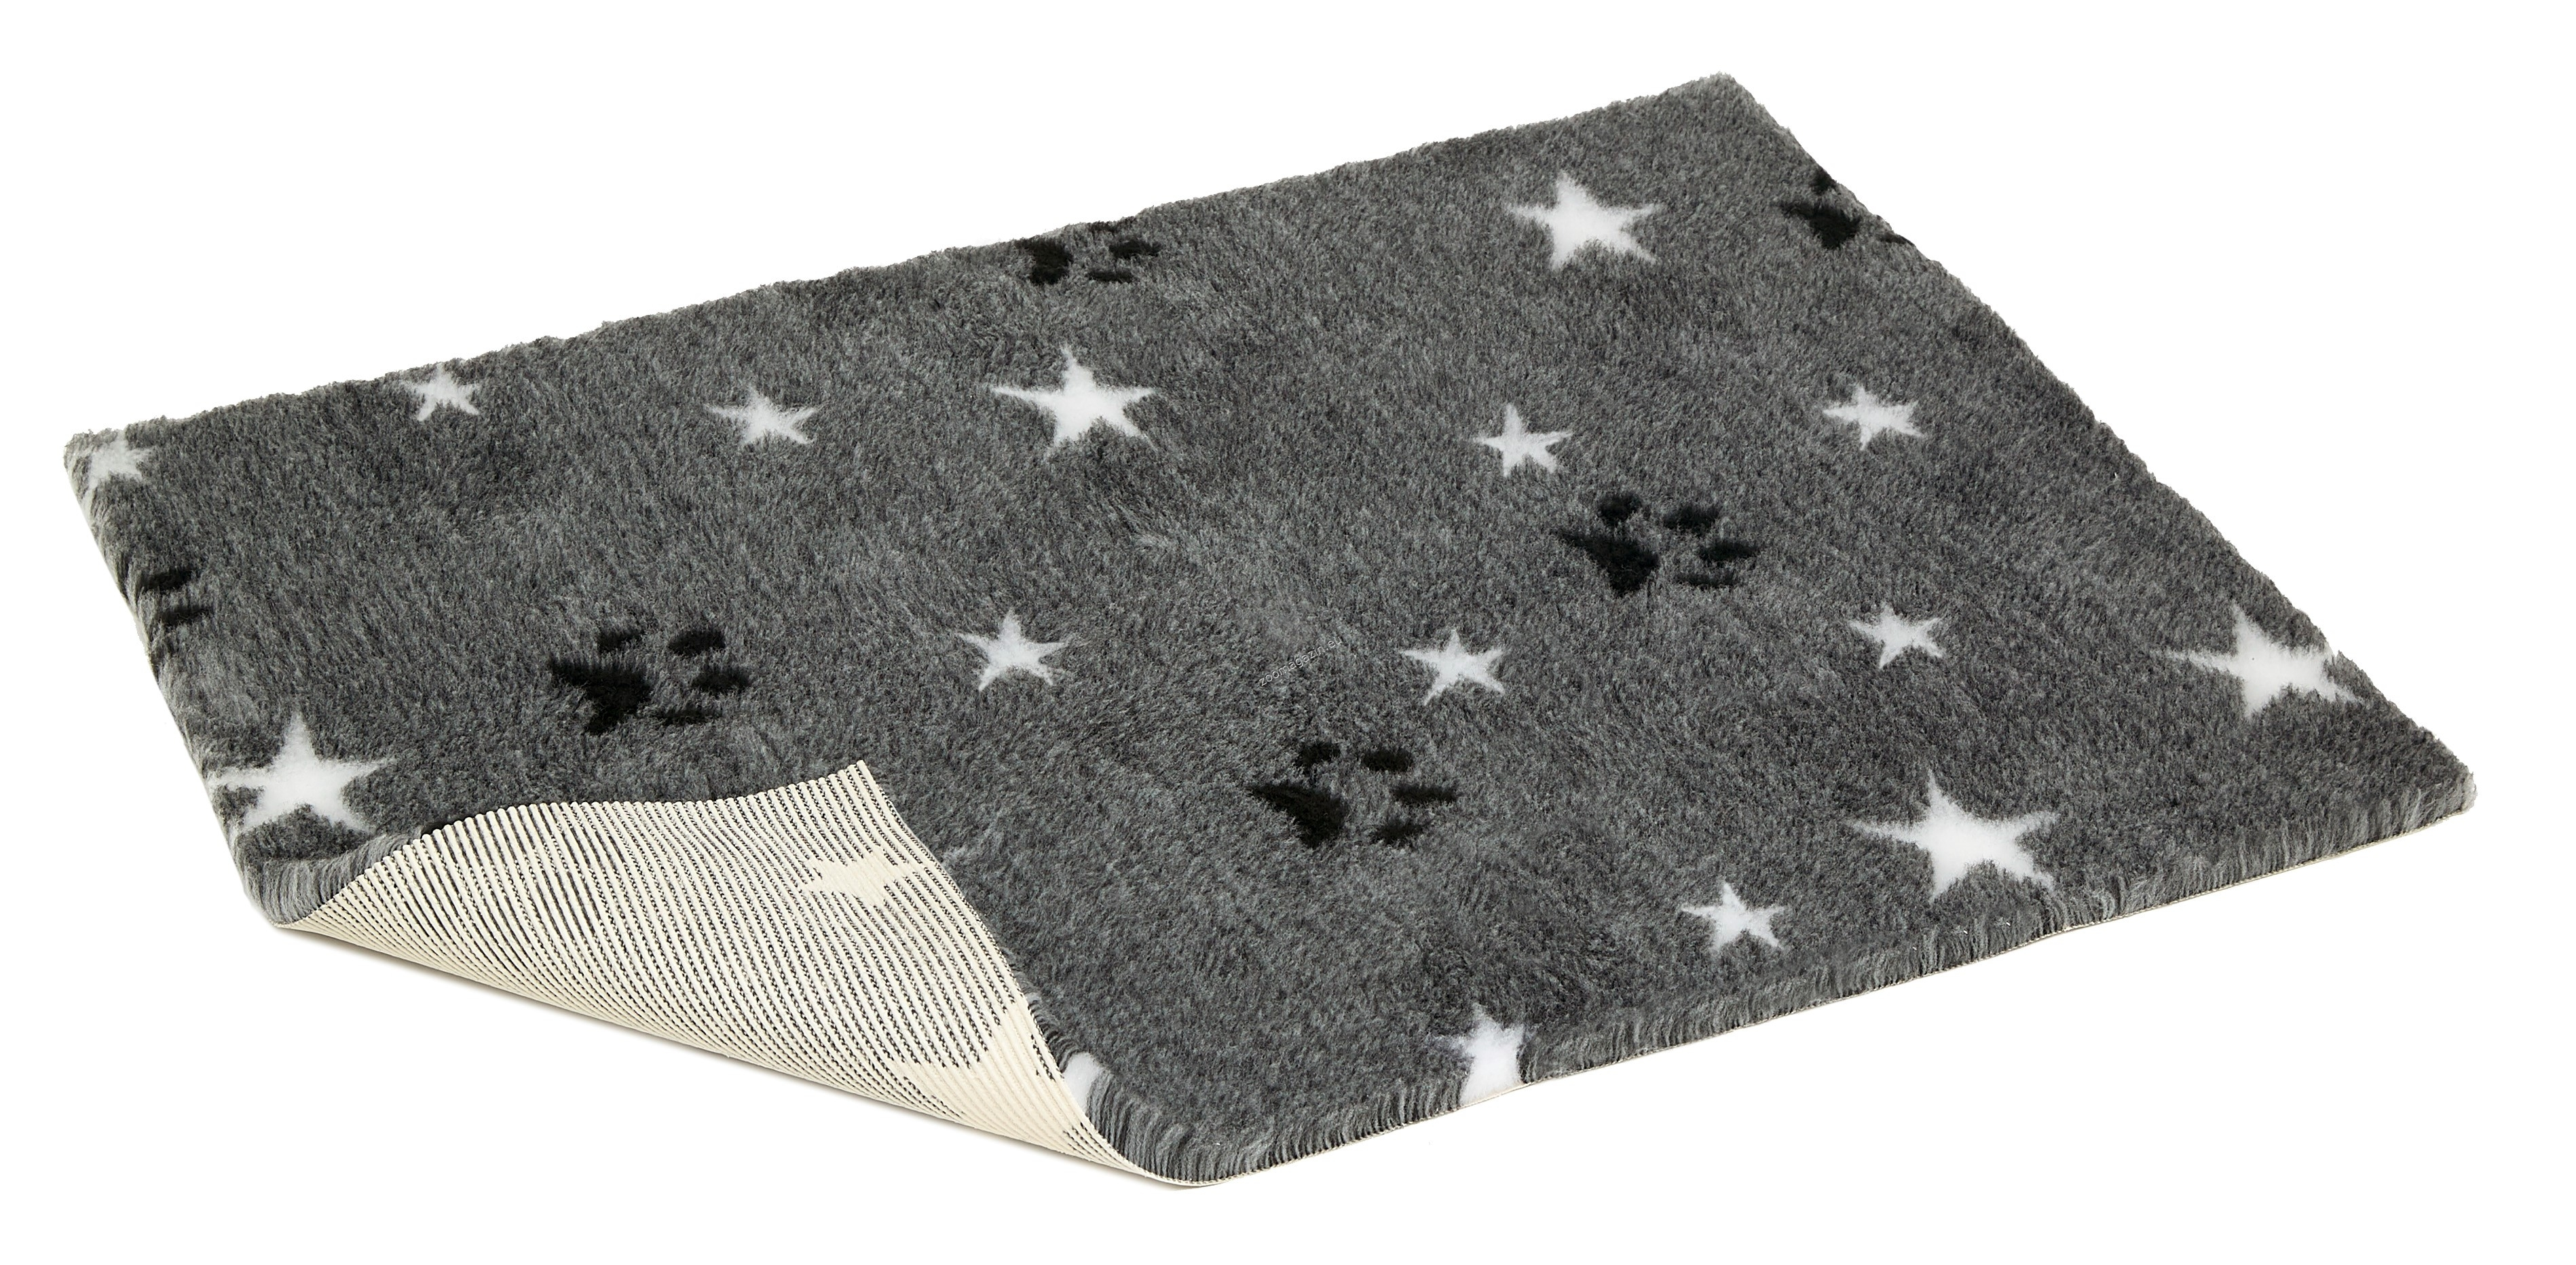 Vetbed Non-Slip Lime Grey with Stars and Paws - мека постелка със слой против пързаляне 120 / 75 см.